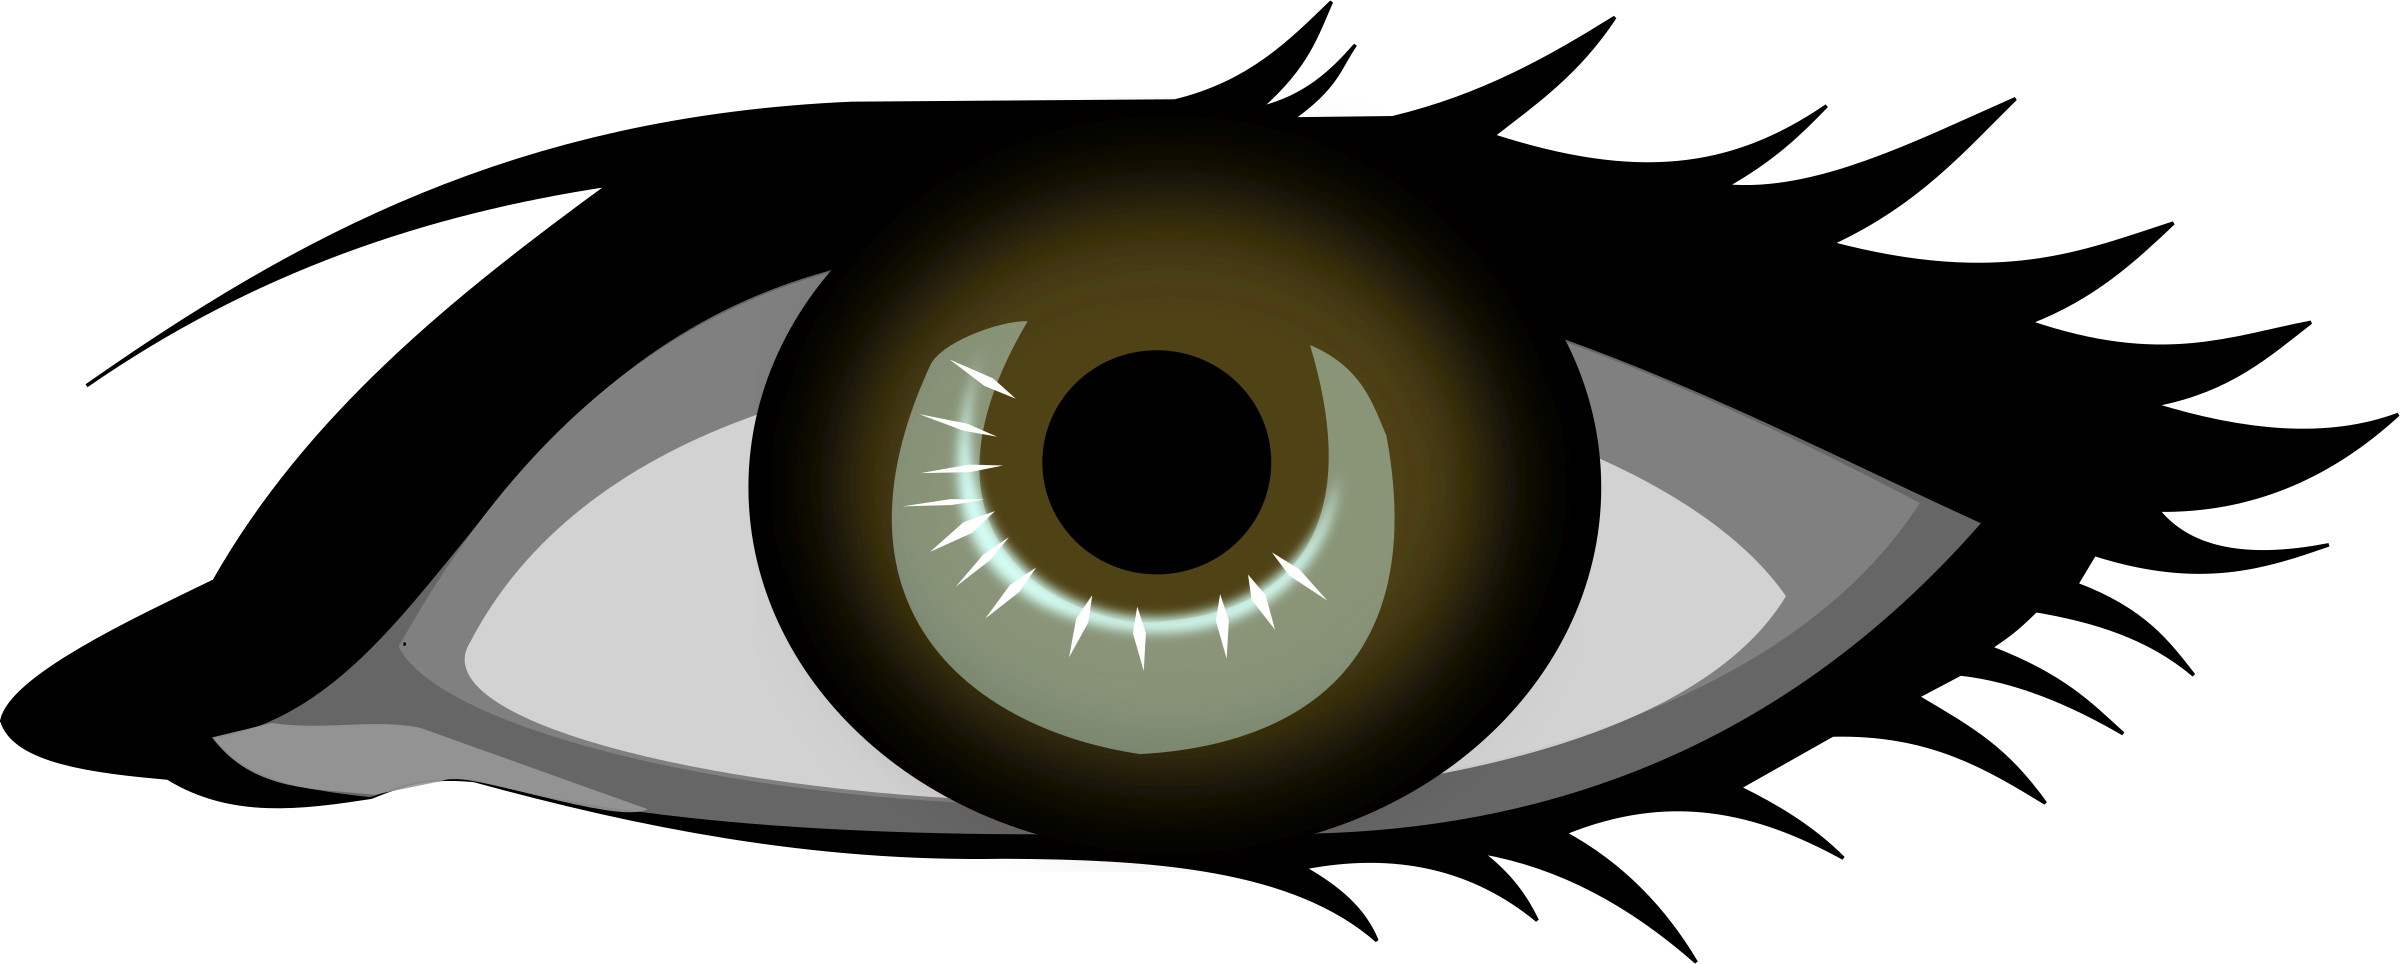 free clipart images eyes - photo #39